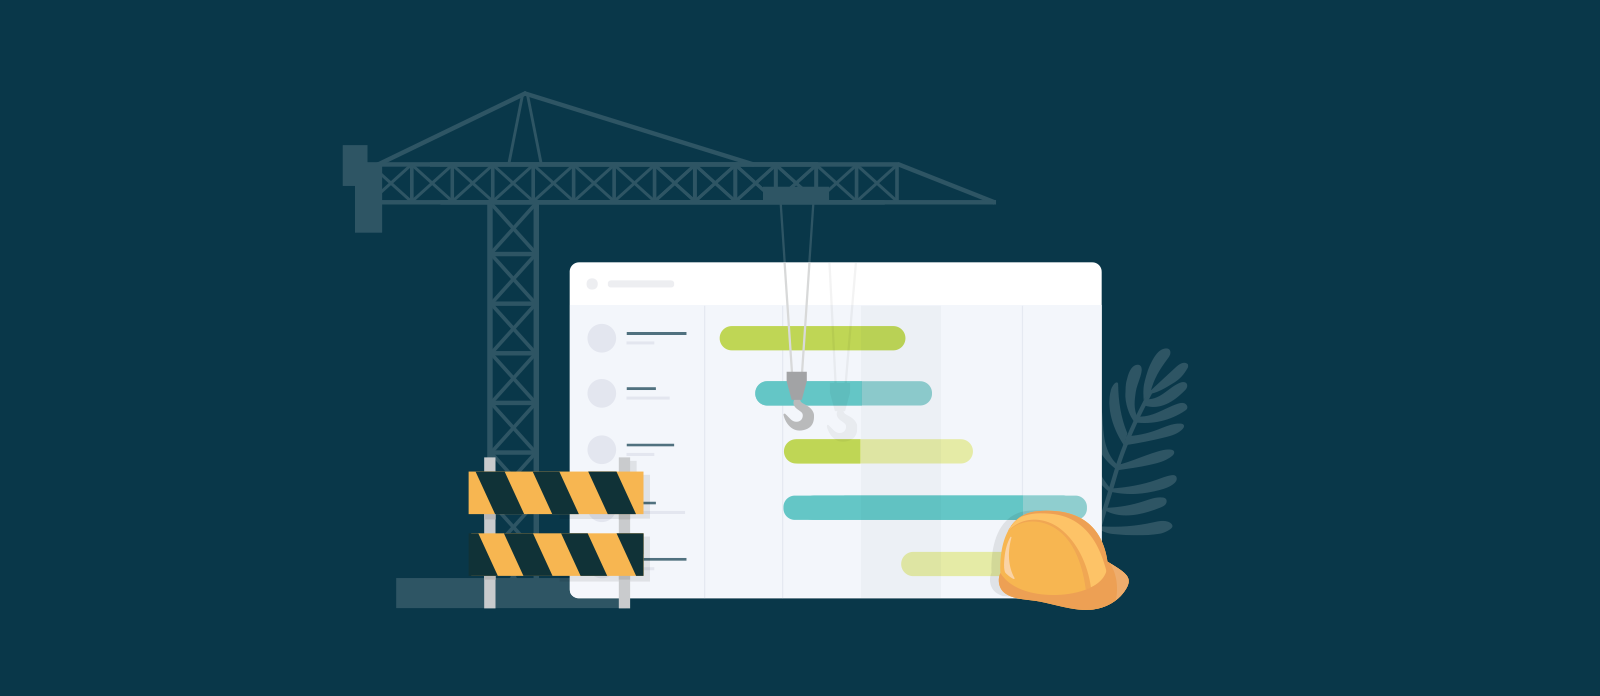 planning a construction project schedule with a gantt chart